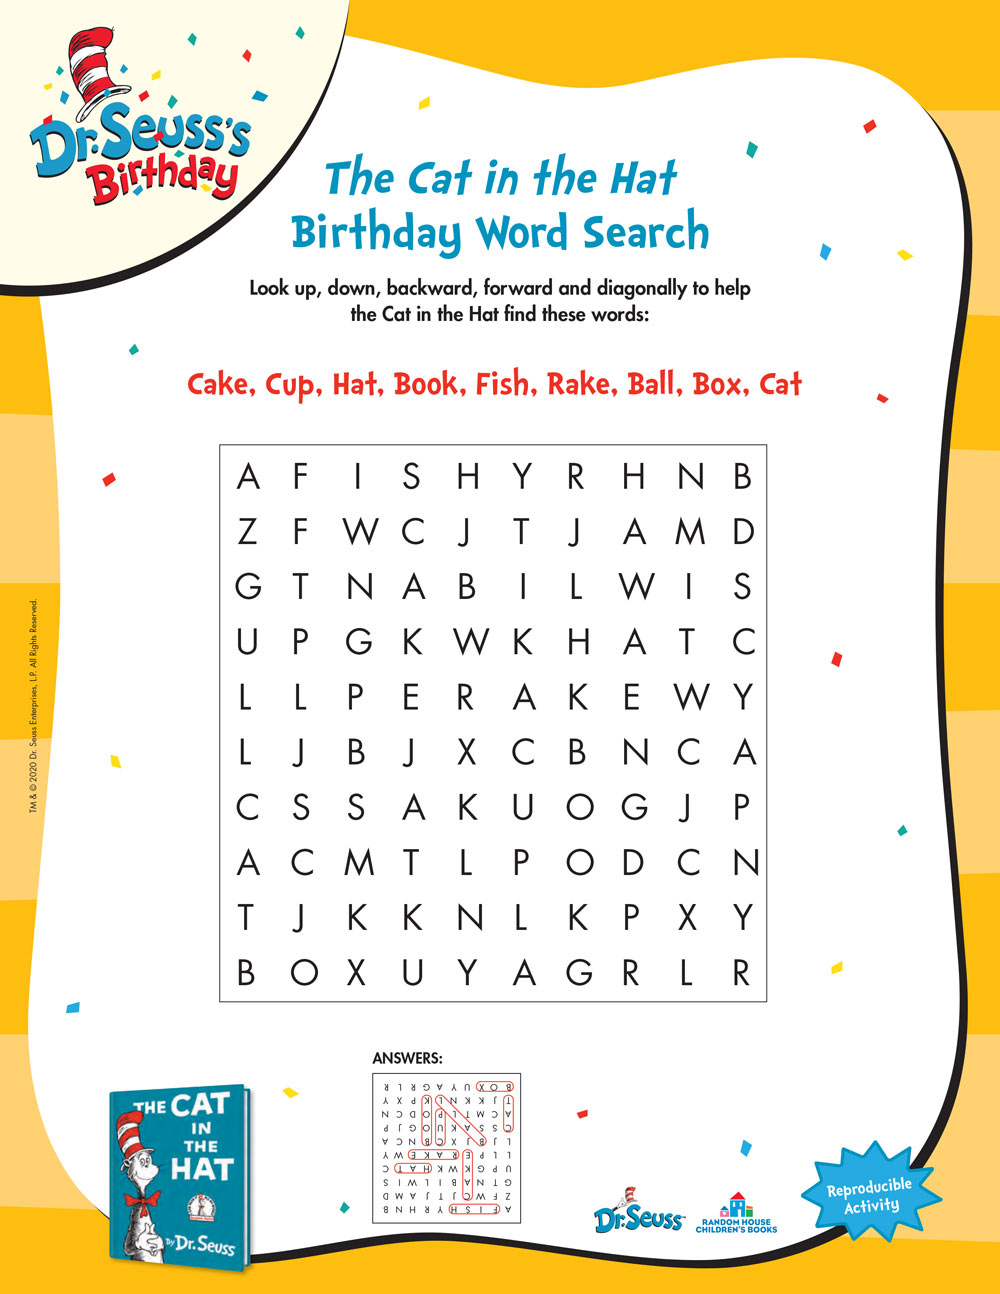 The Cat in the Hat Birthday Word Search